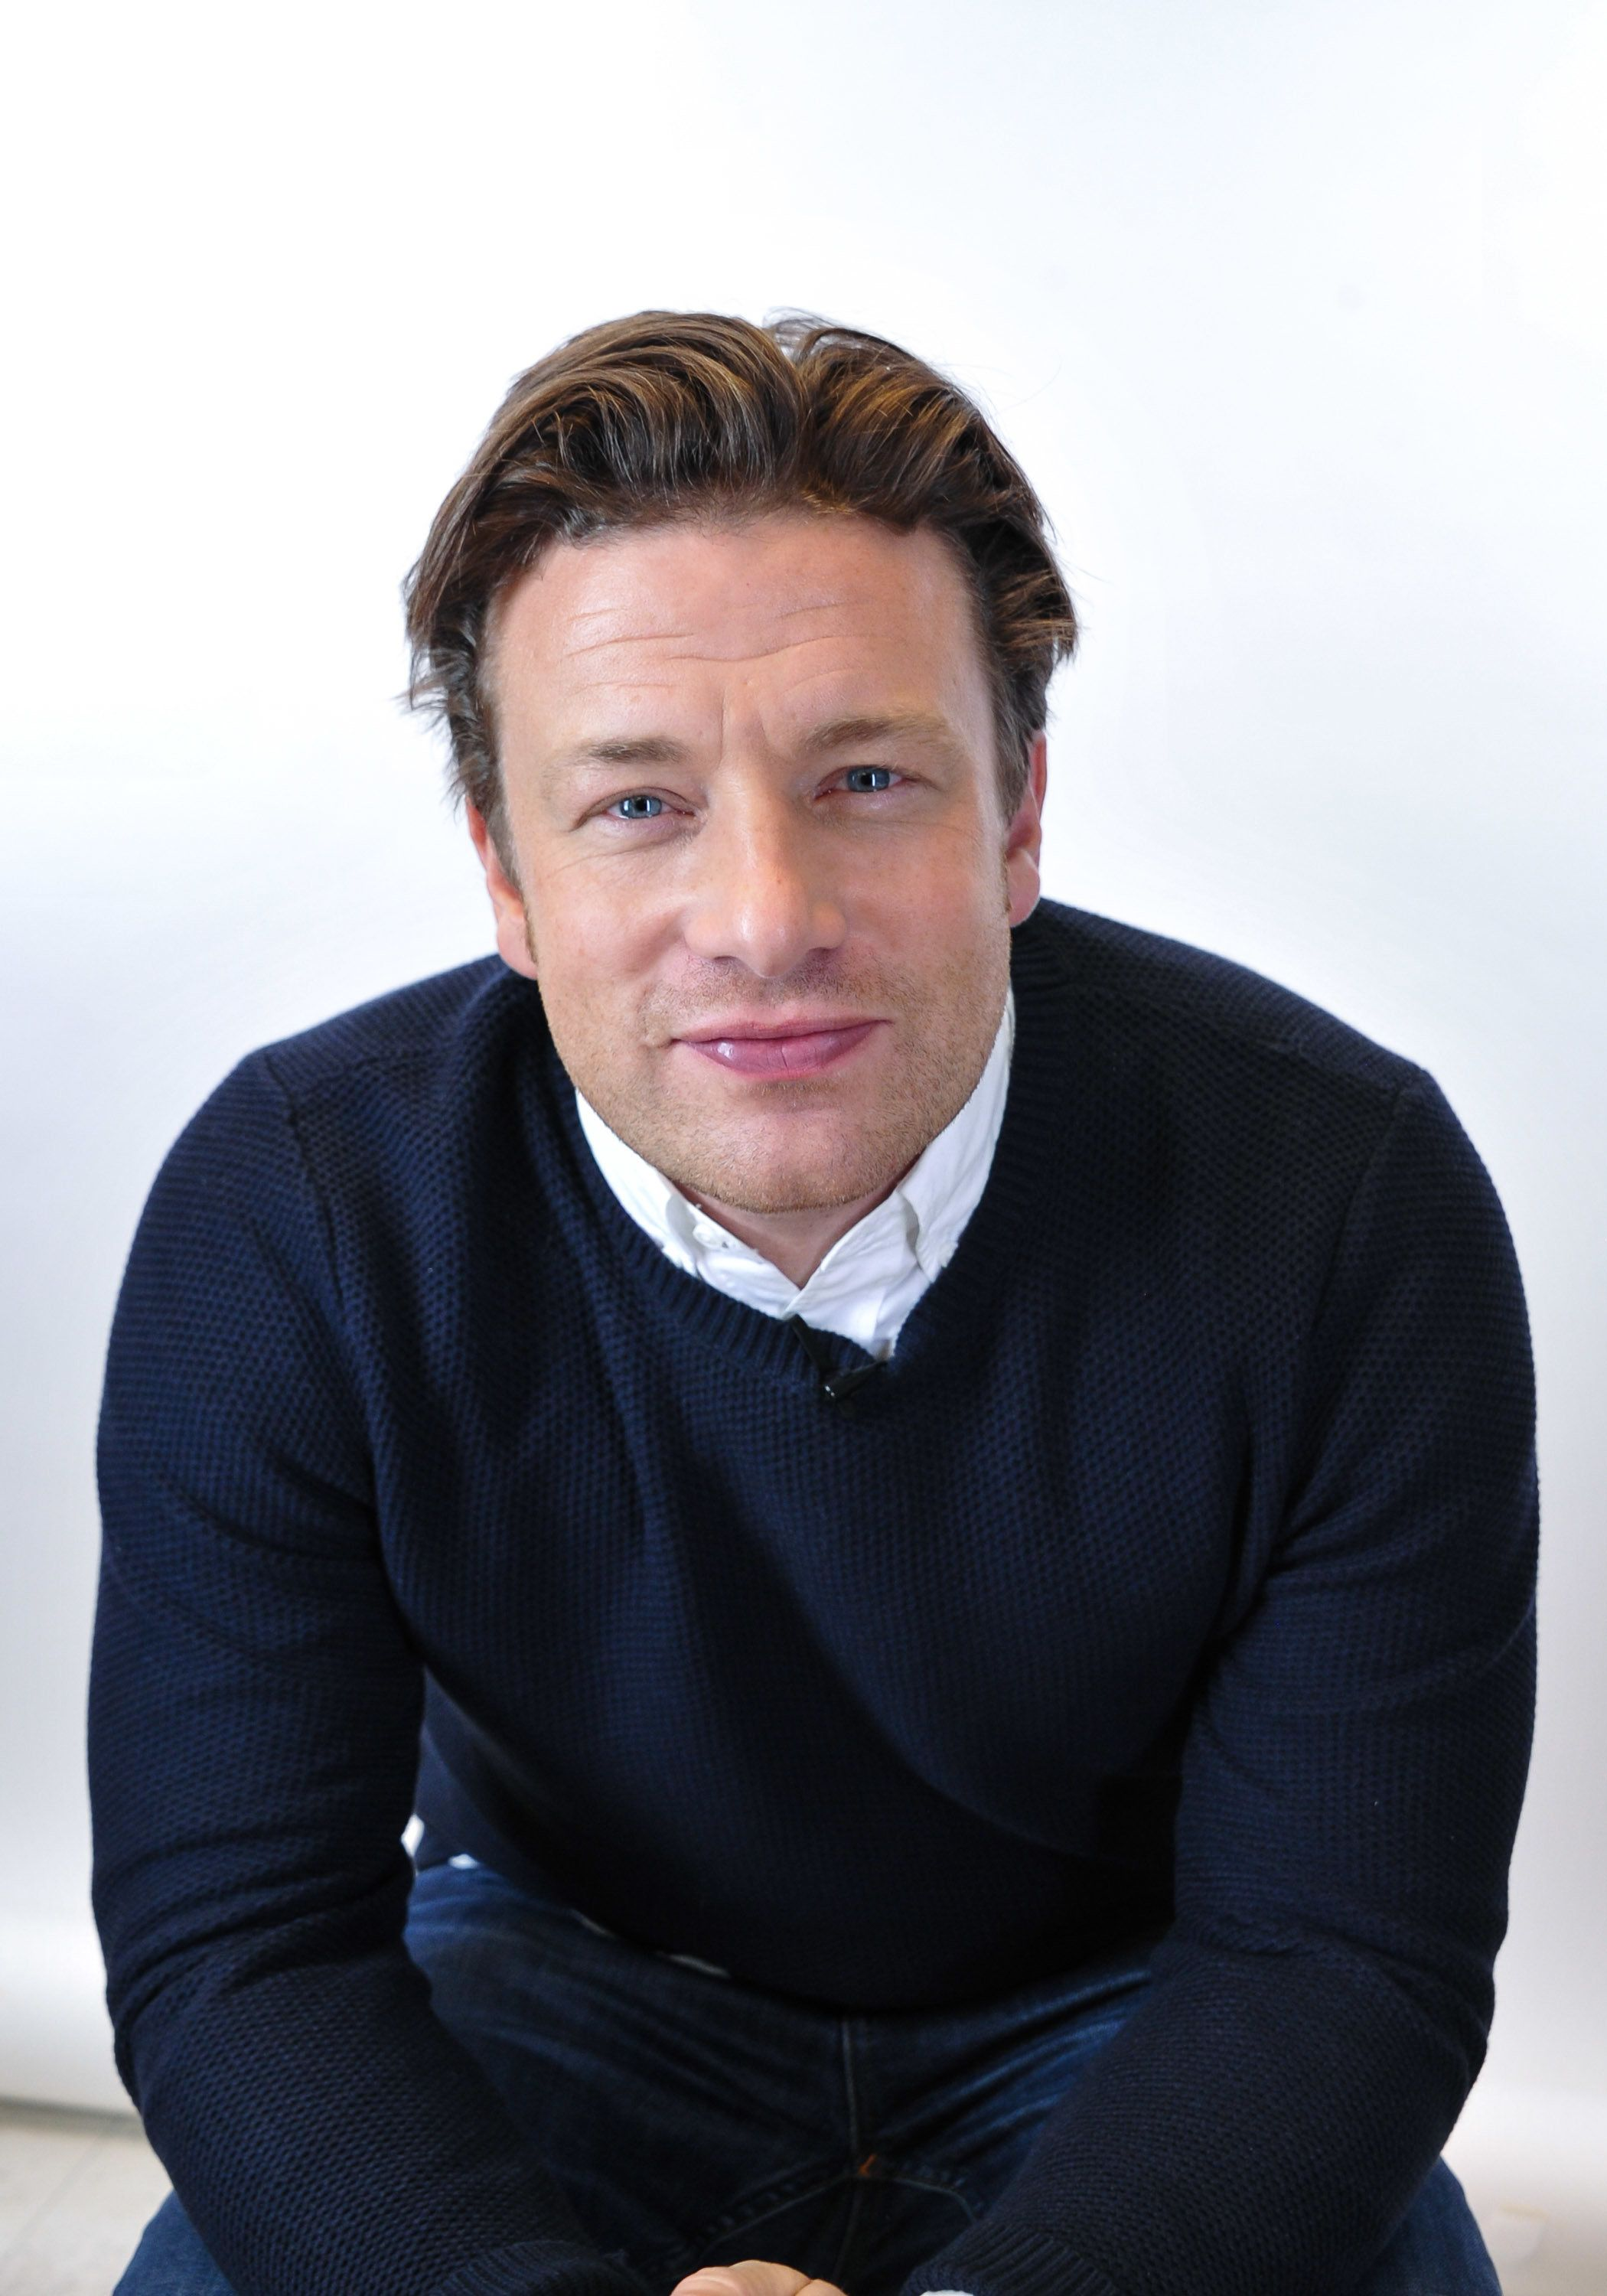 Jamie Oliver Slams 'Middle-Class Logic' On Obese Kids From Poor